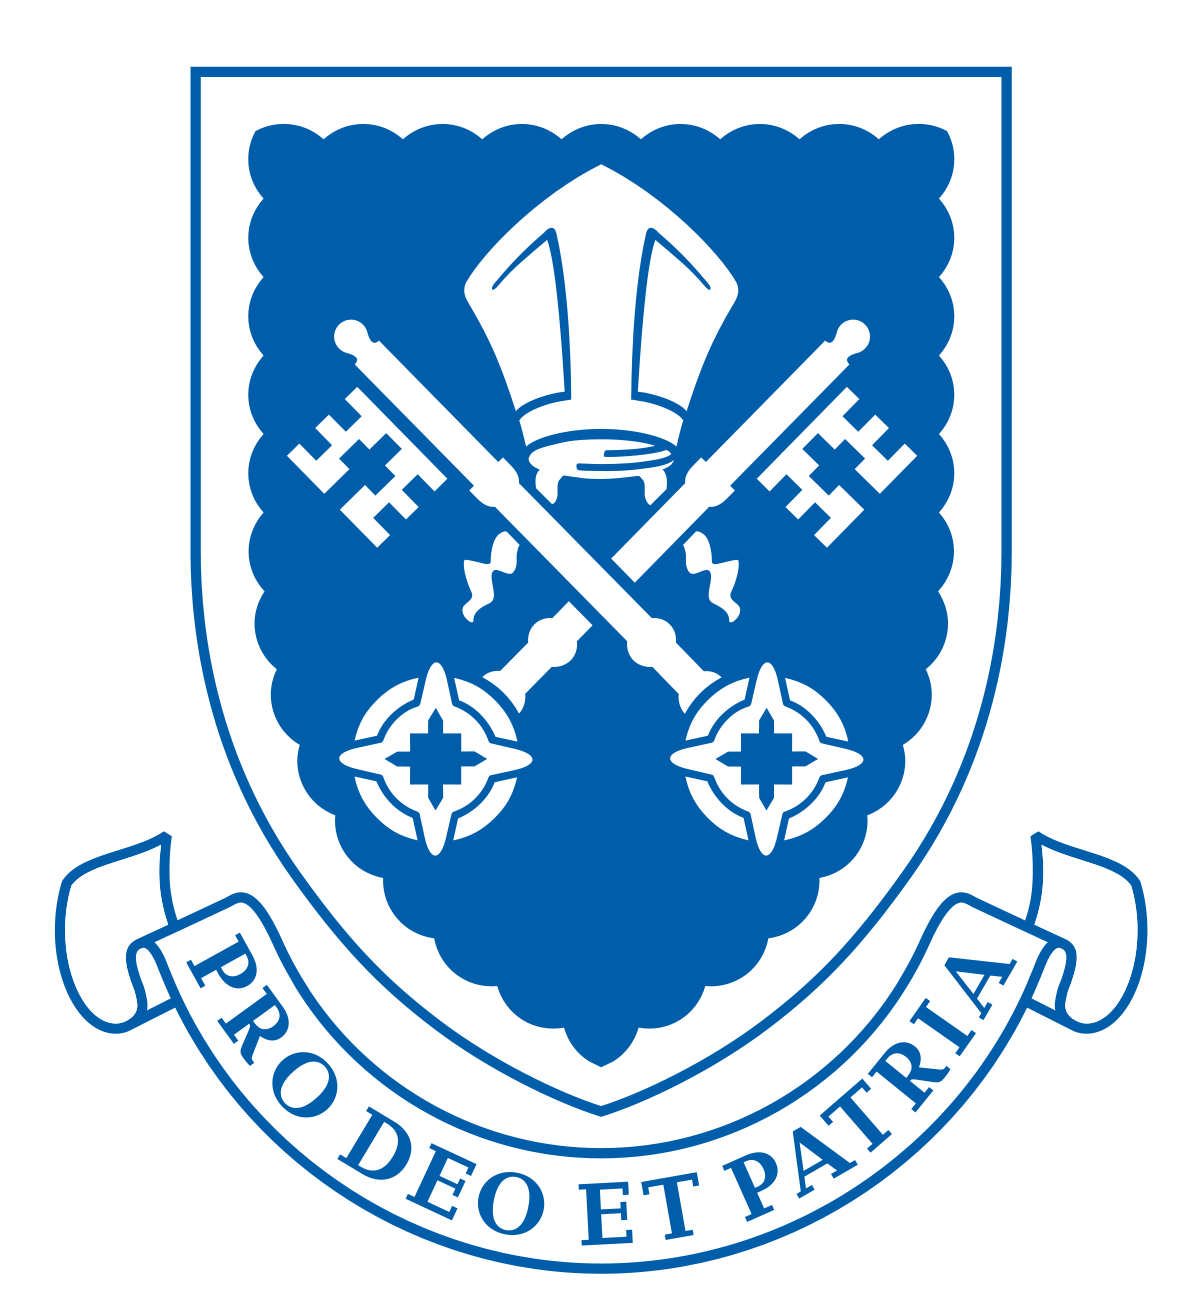 Australia football crest 256 x 256 png image. St peter s college